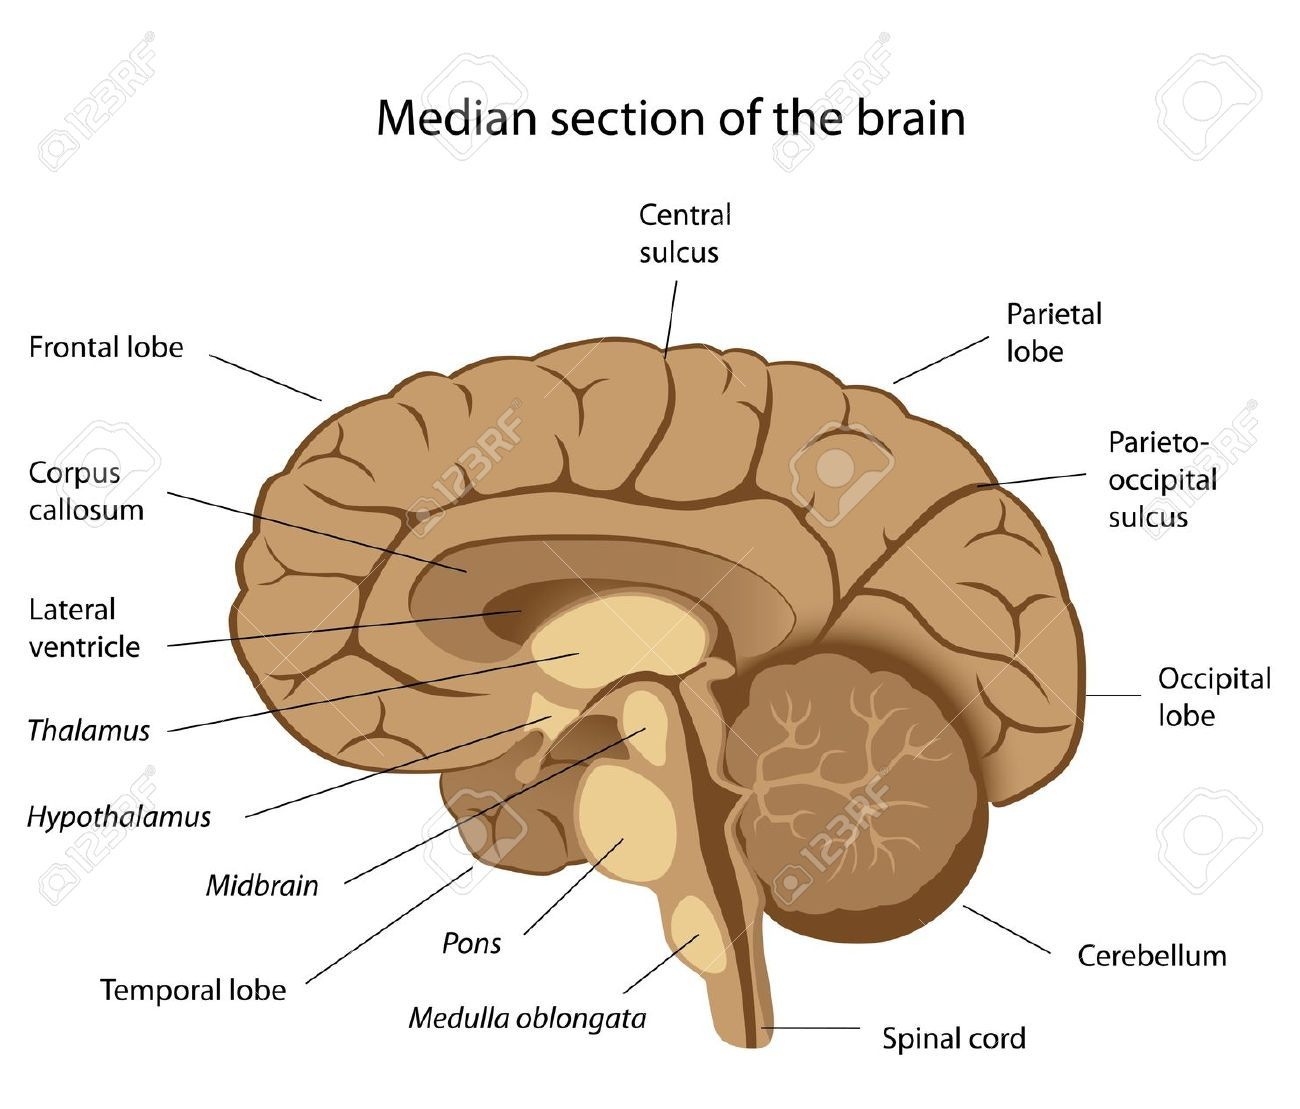 Midsection | Project 12/12 a&p | Pinterest | Brain anatomy, Anatomy ...